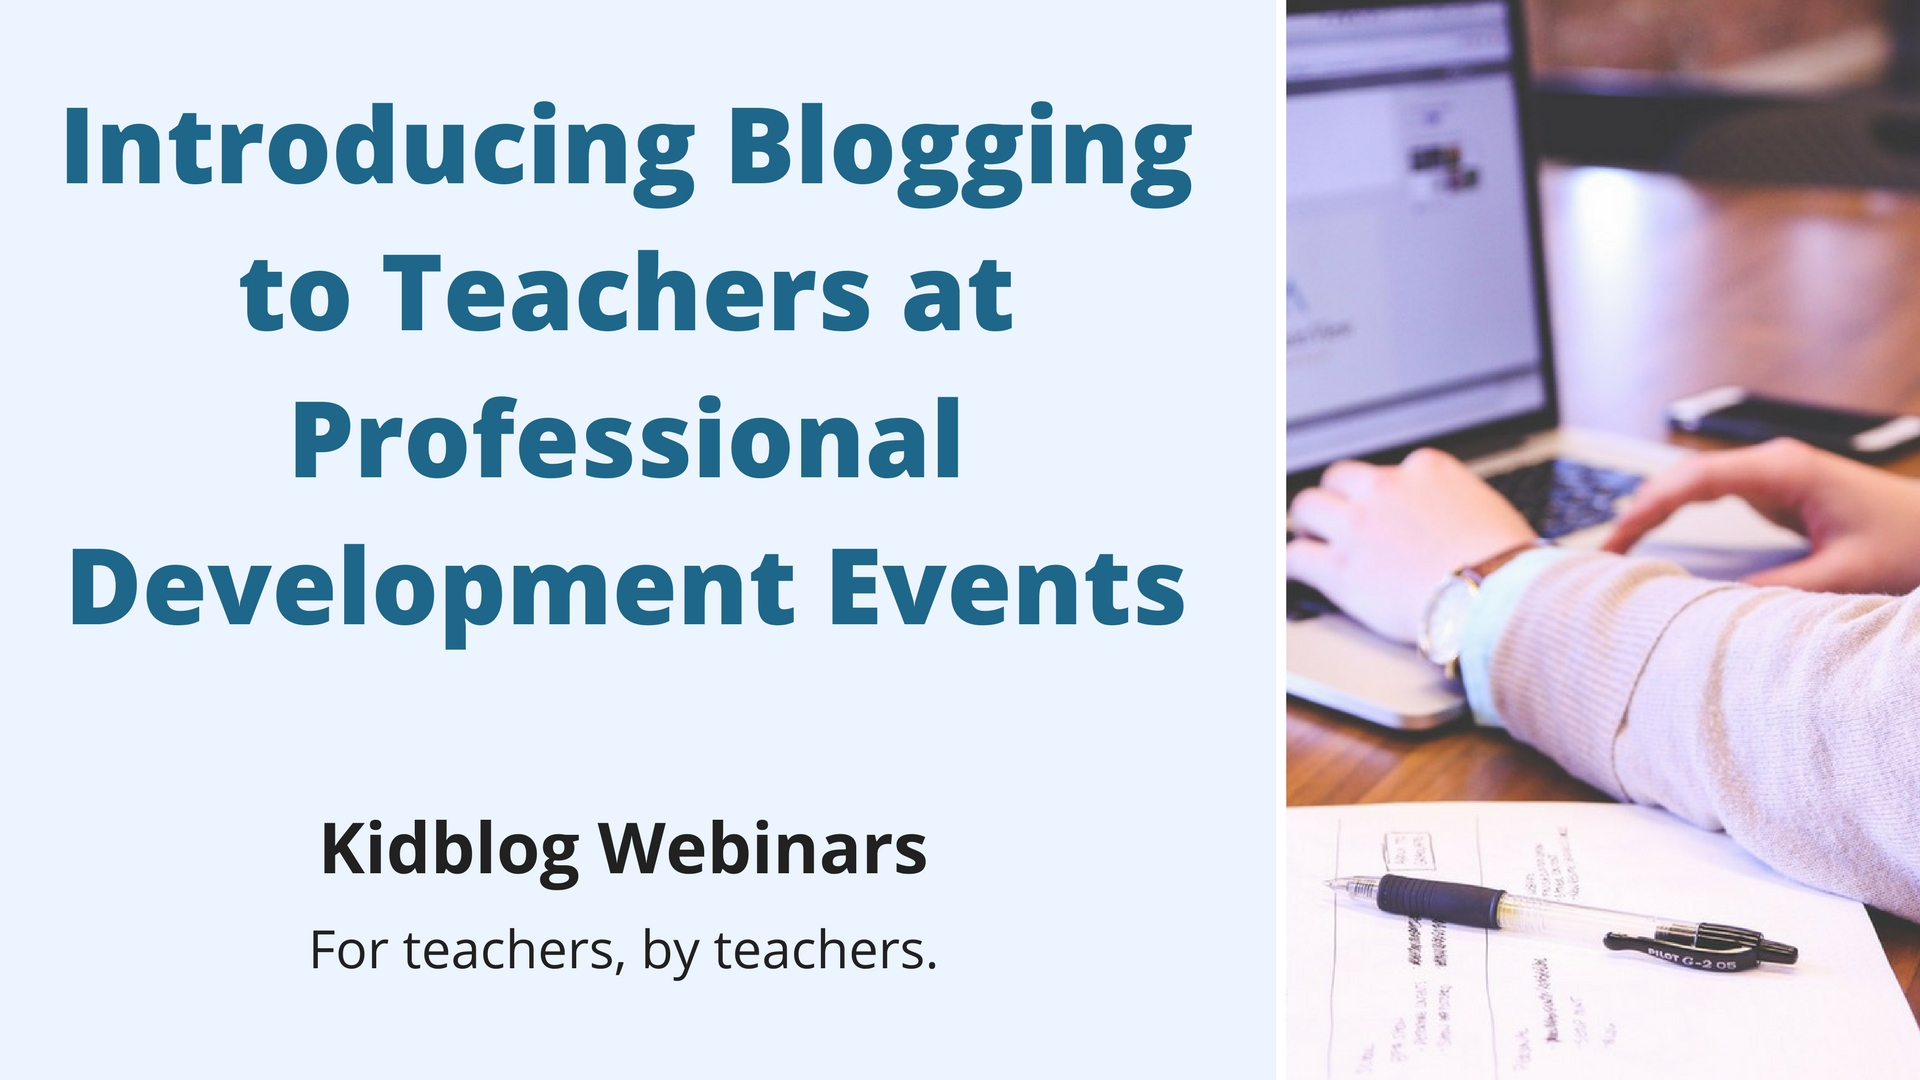 Webinar: Introducing Blogging to Teachers at Professional Development Events